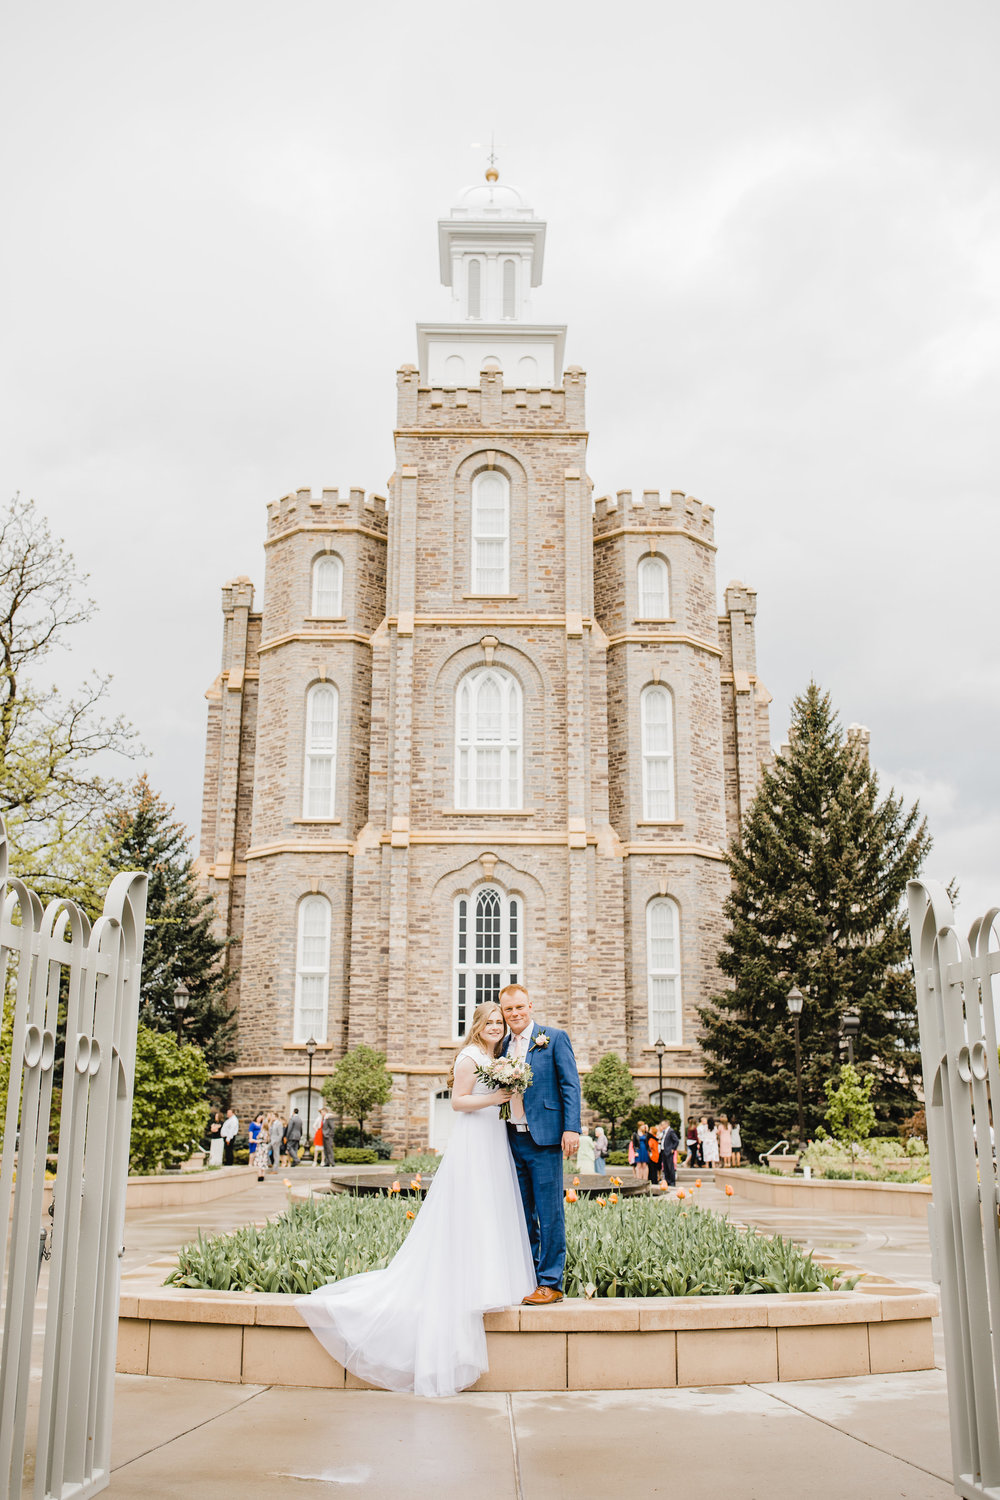 professional wedding photographer in cache valley utah lds temple wedding wedding bridals summer wedding